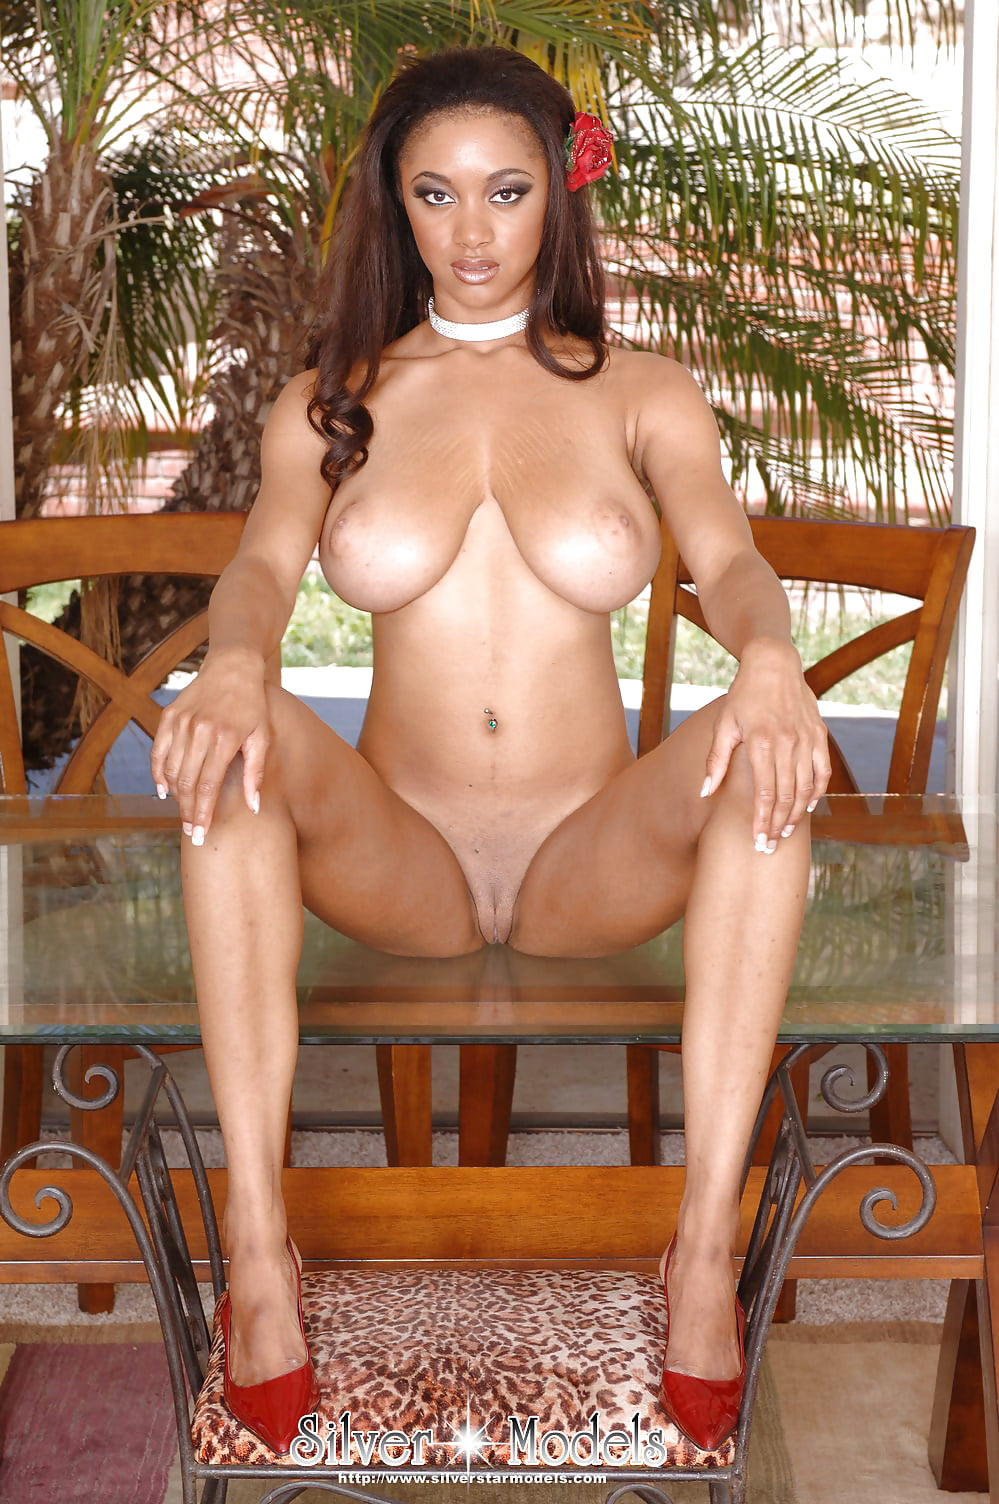 Tyra moore nude and eating